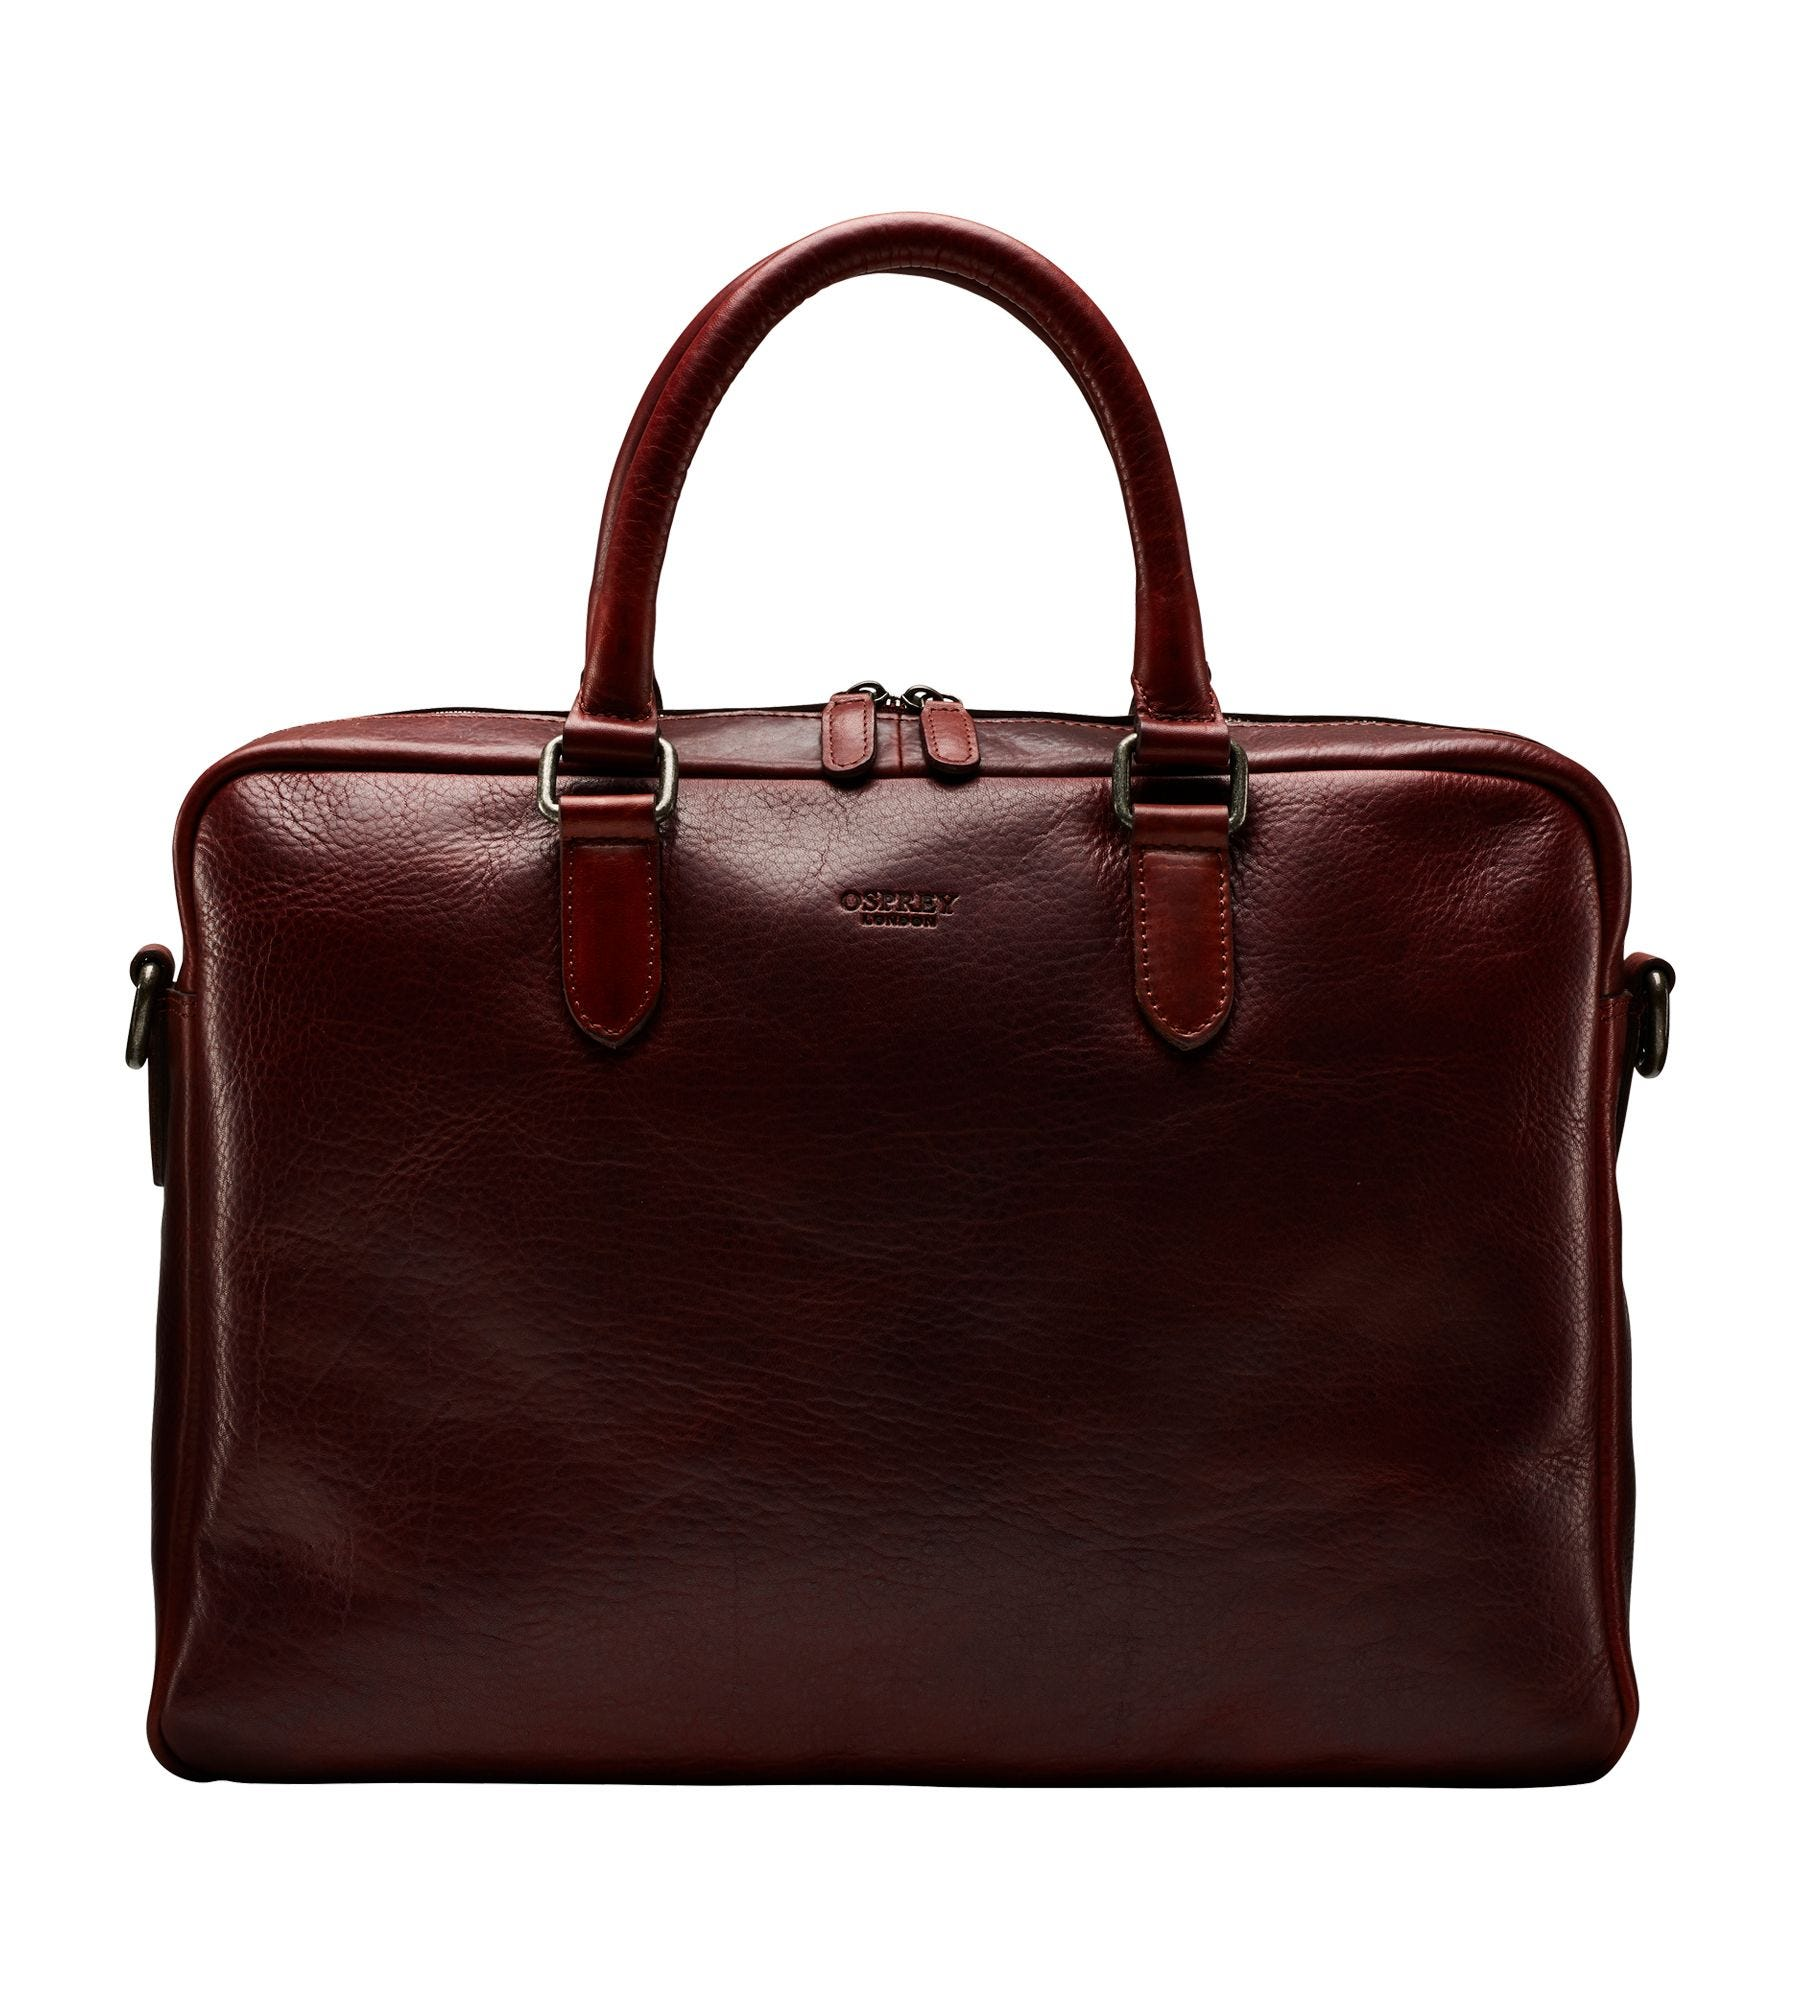 The Hector Leather Laptop Bag